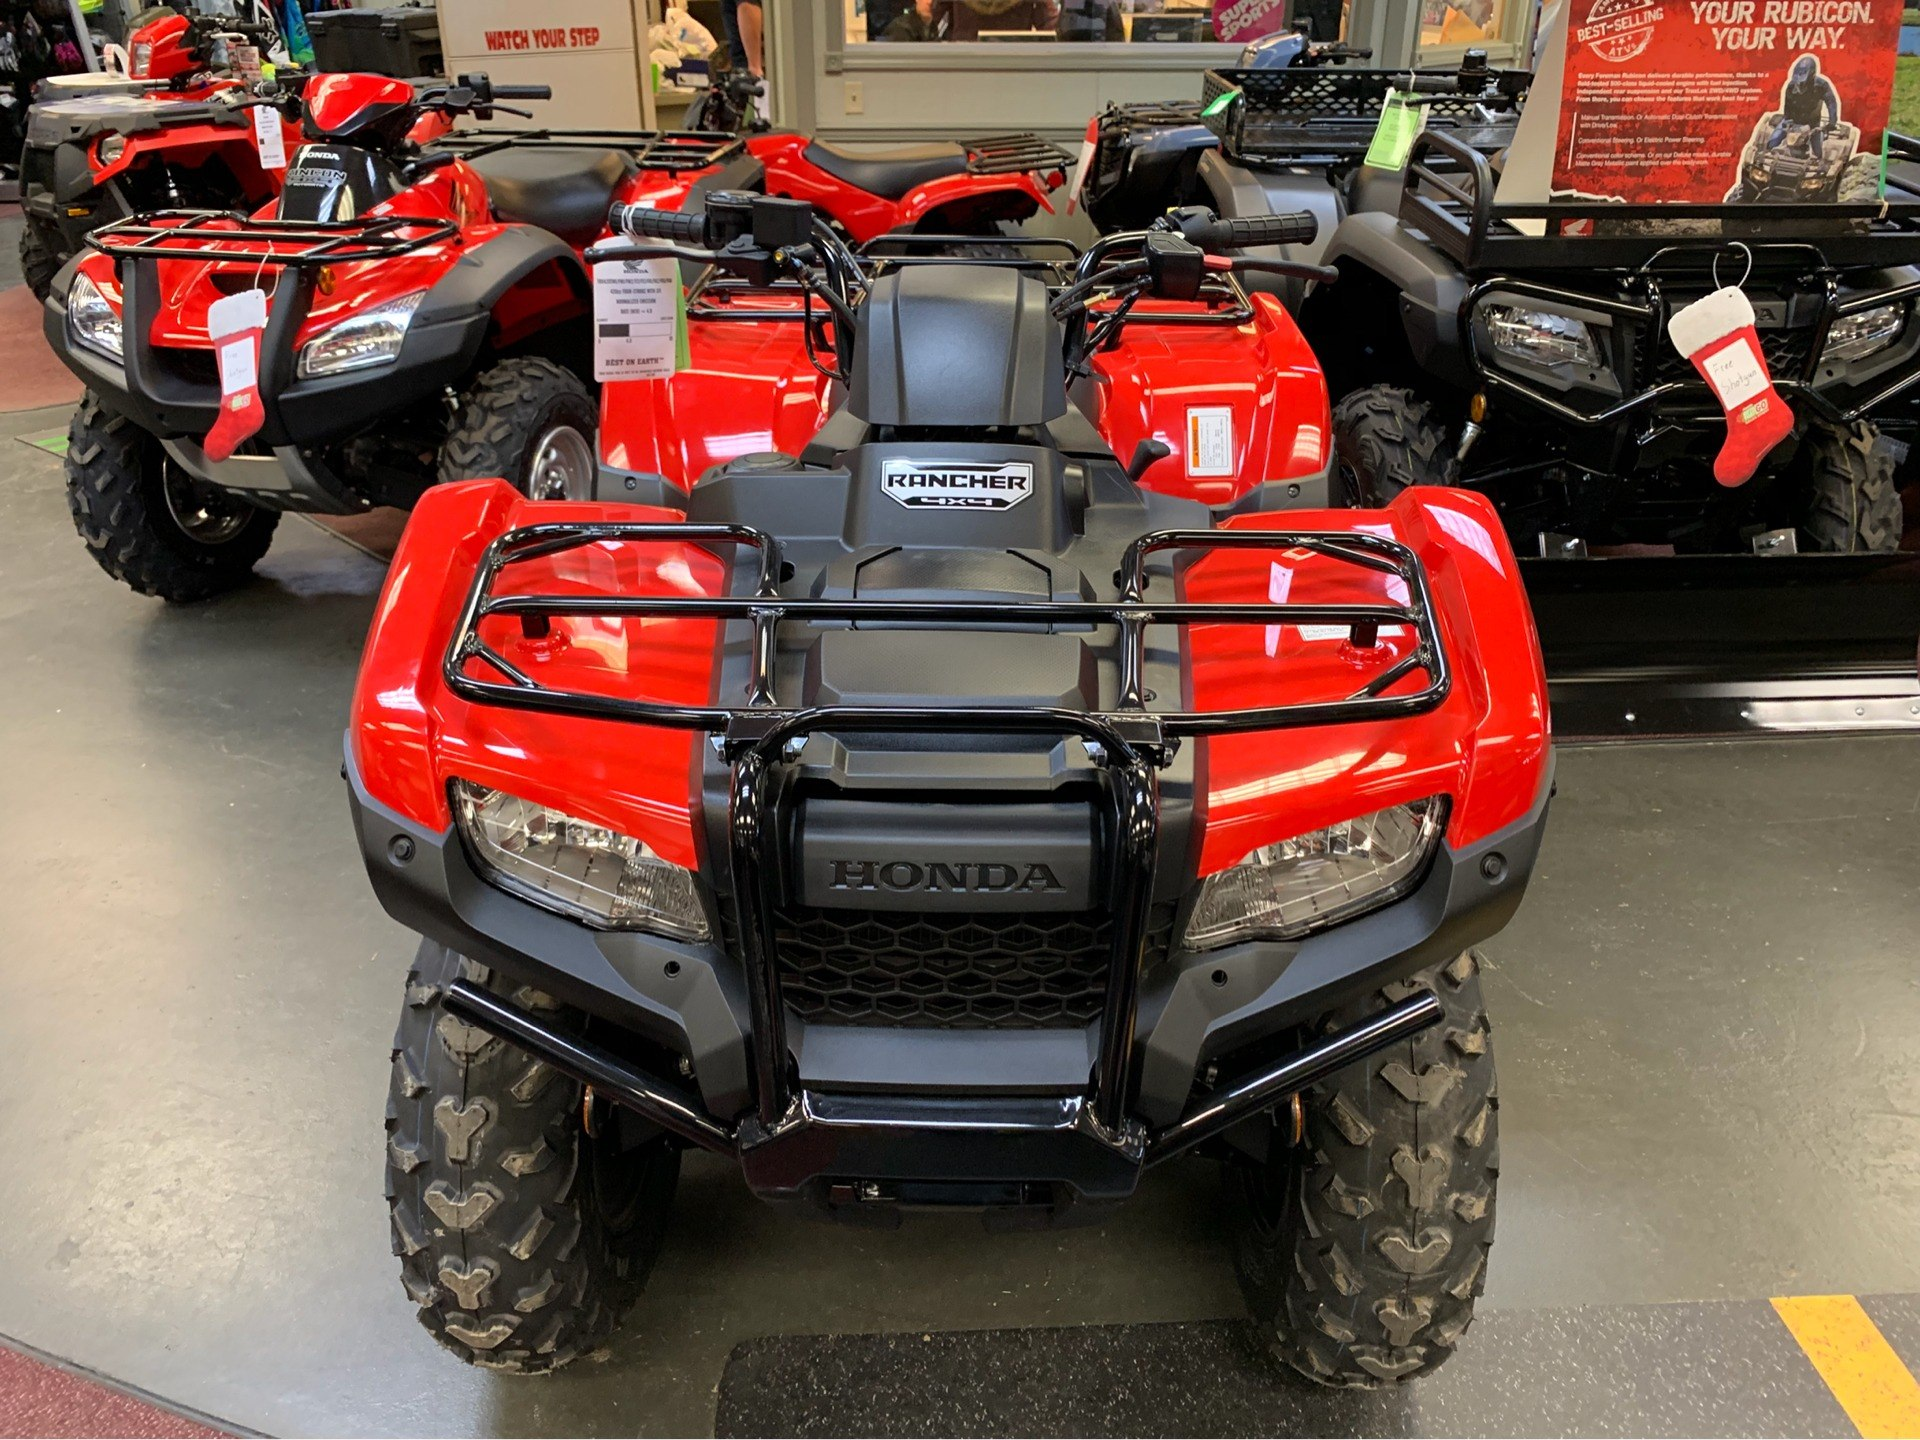 2019 Honda FourTrax Rancher 4x4 in Petersburg, West Virginia - Photo 3